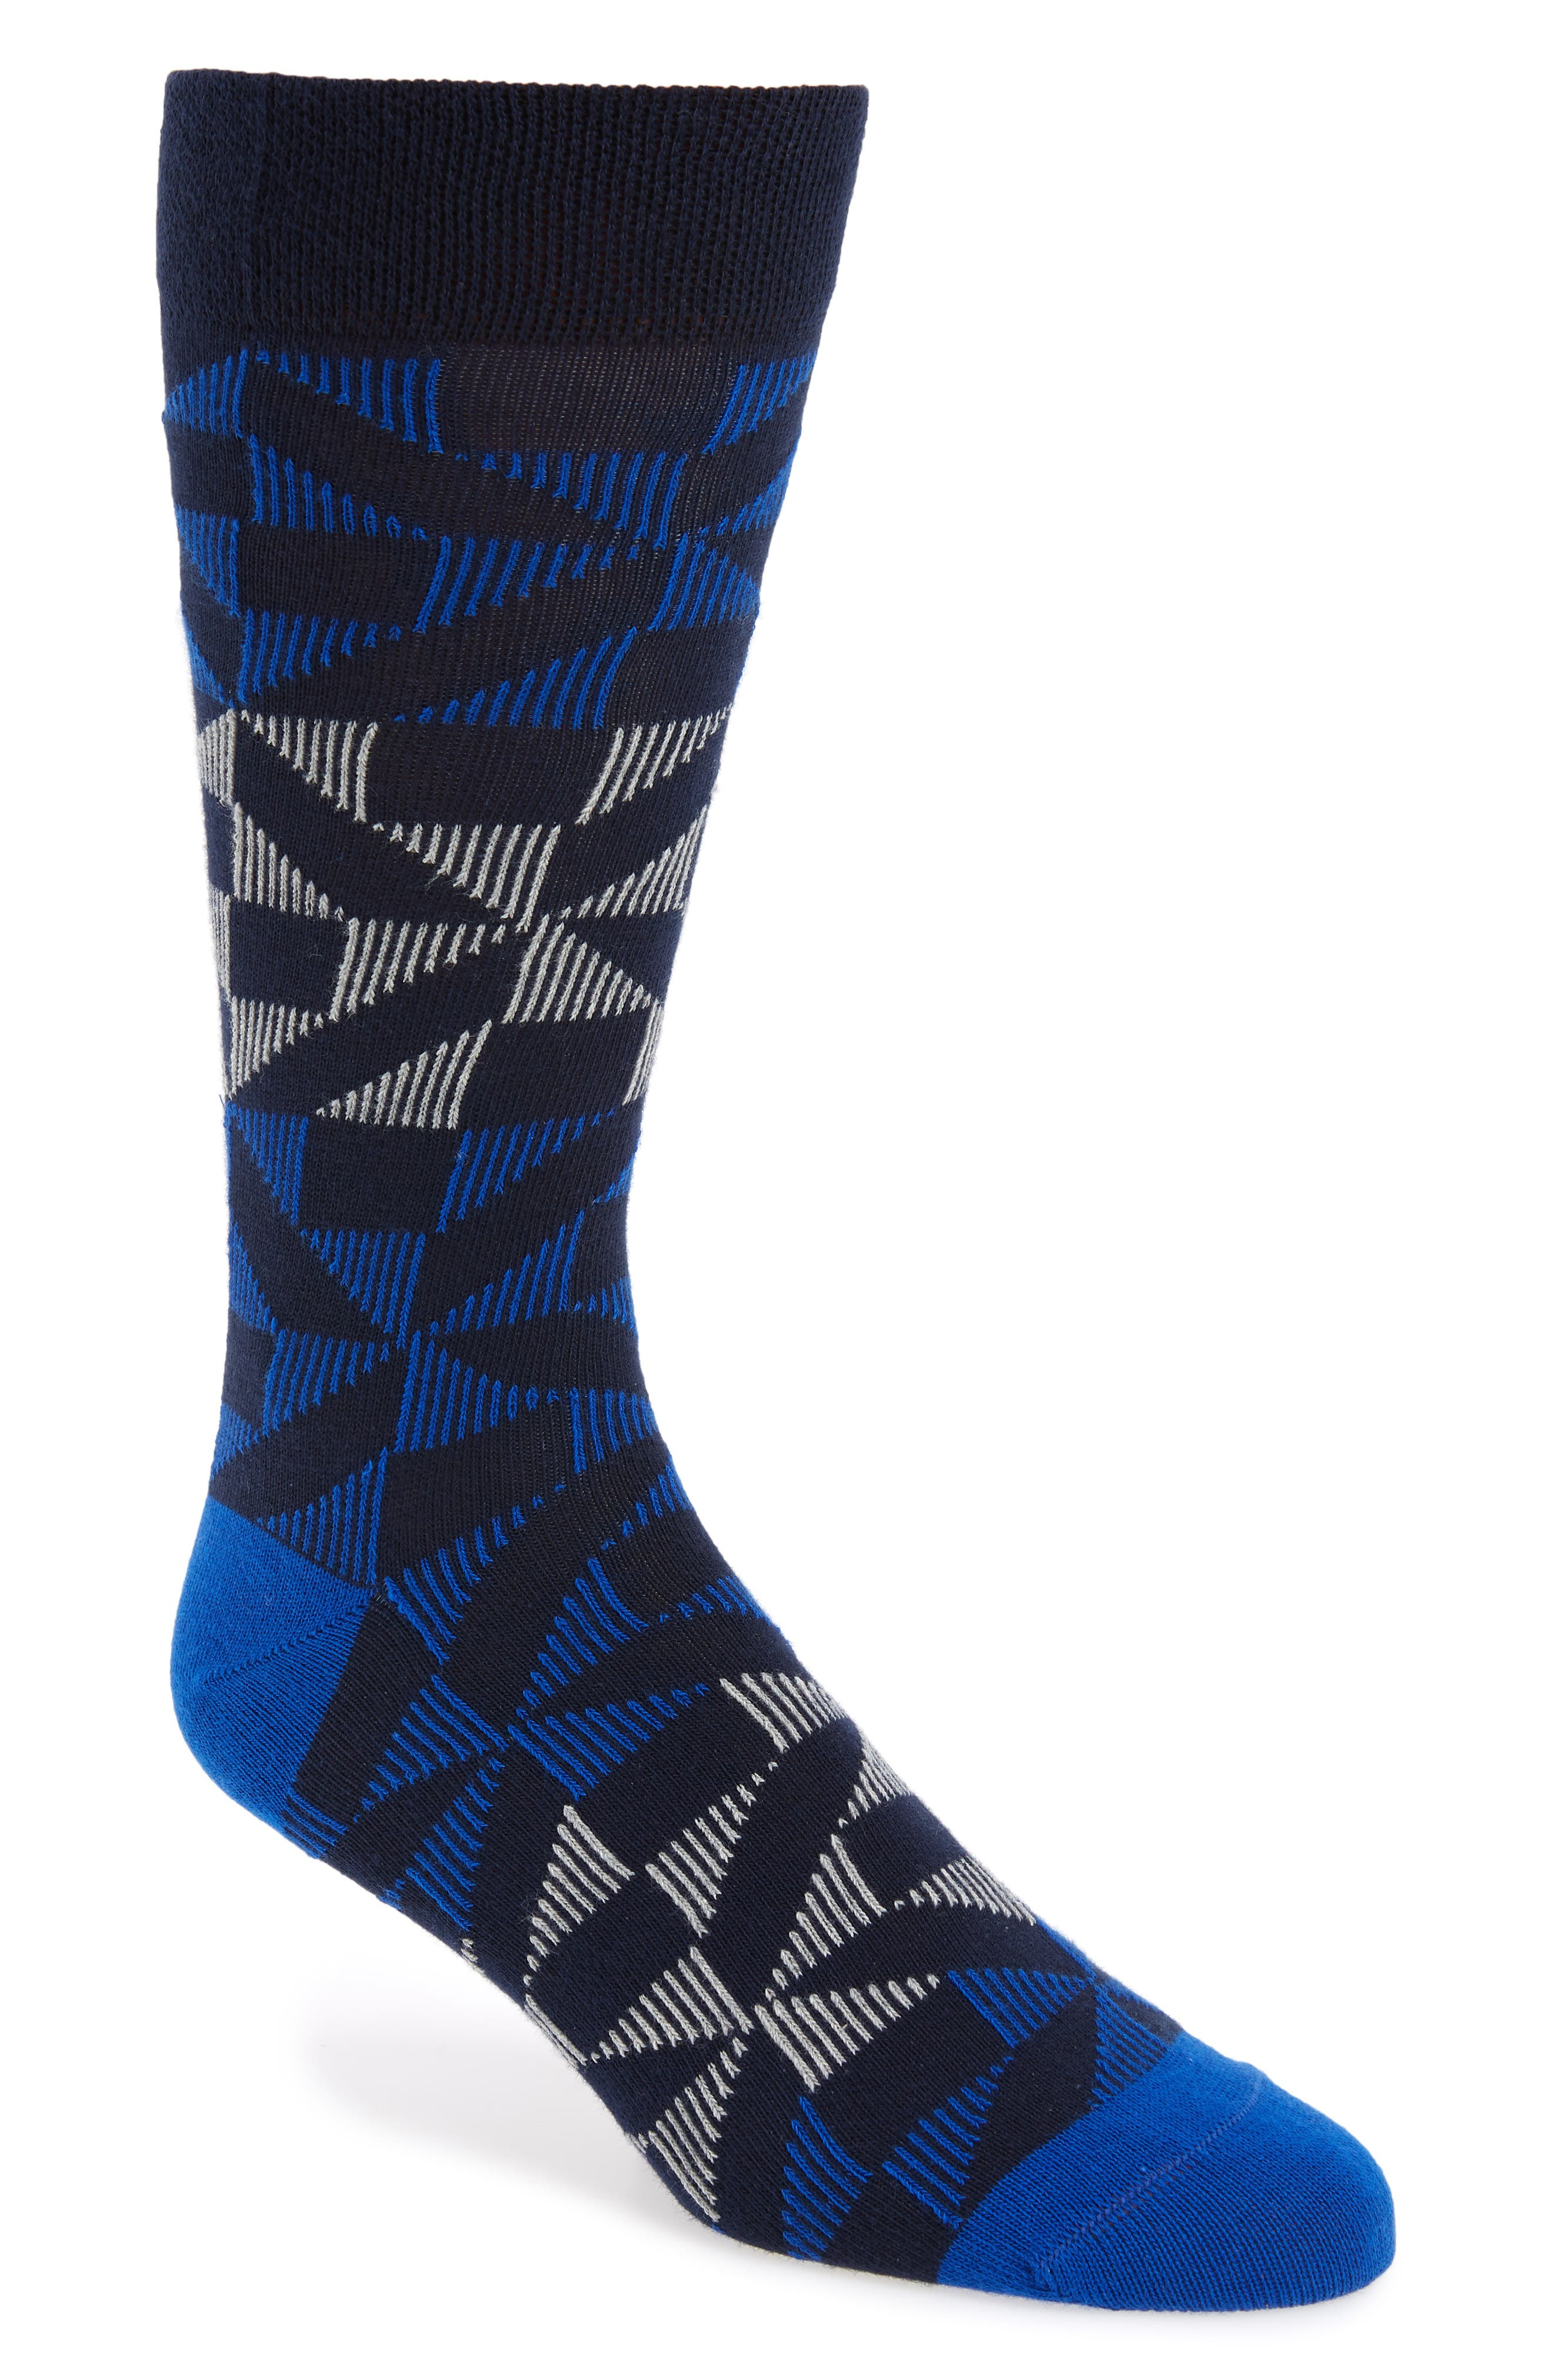 Newhome Geometric Socks,                             Main thumbnail 1, color,                             421